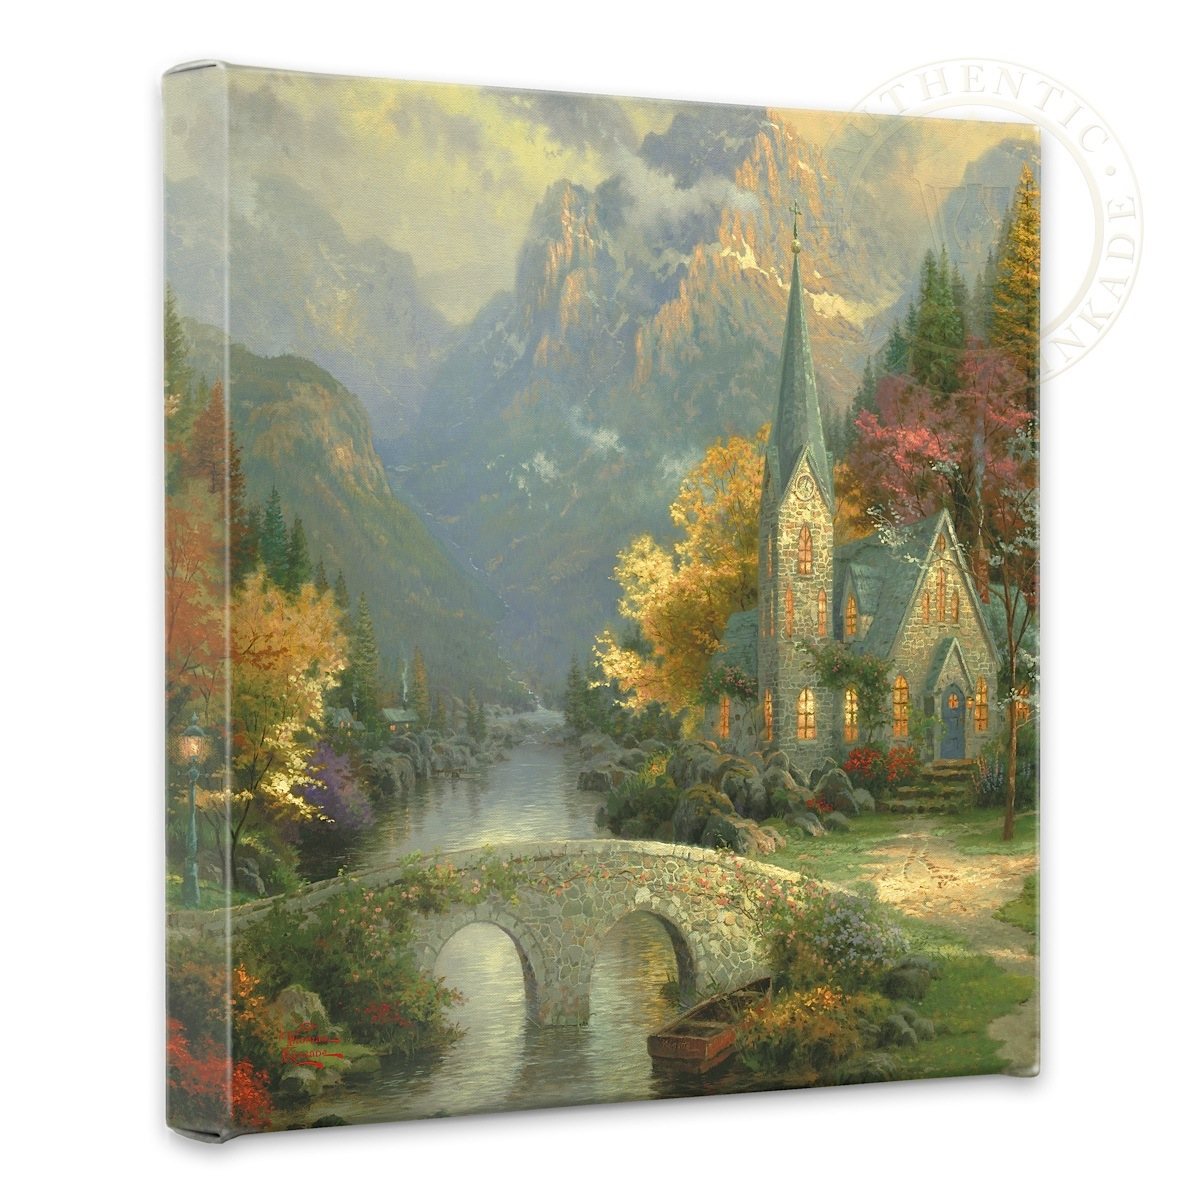 "Mountain Chapel, The - 14"" x 14"" Gallery Wrapped Canvas"